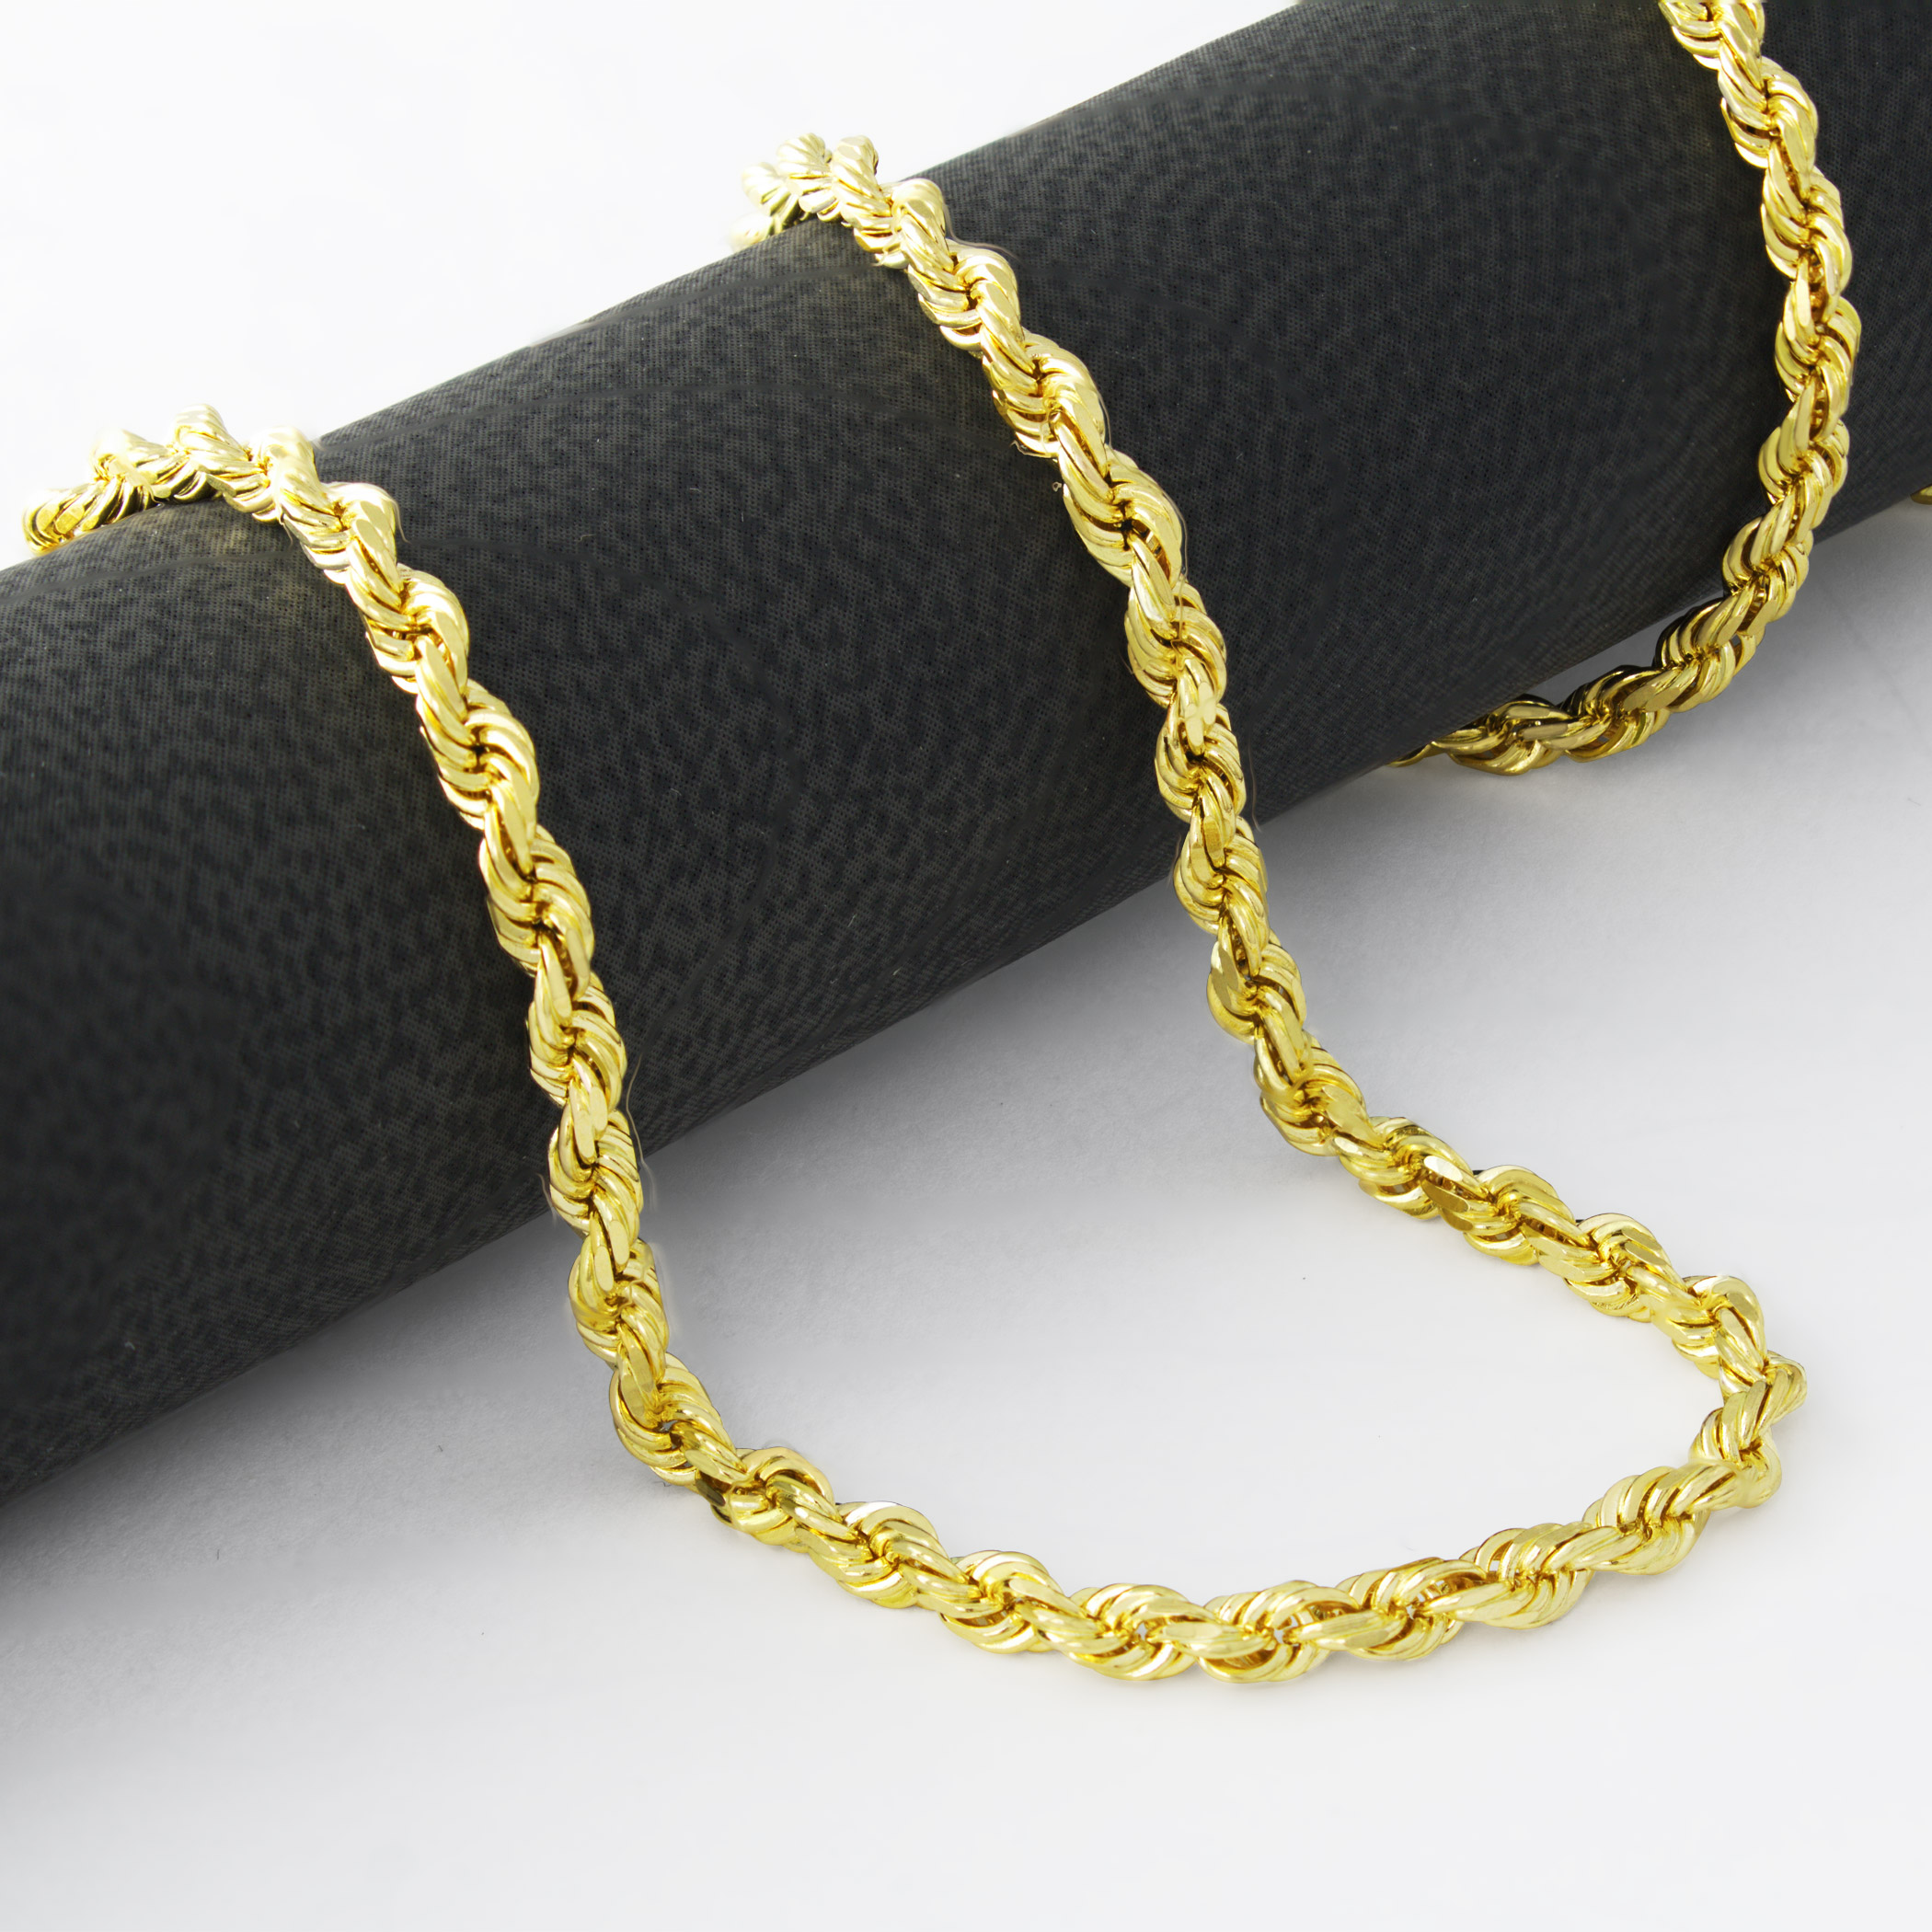 d64ccd0ca08ad Details about 14K Yellow Gold 4mm Italian Diamond Cut Rope Chain Necklace  Mens Women 20